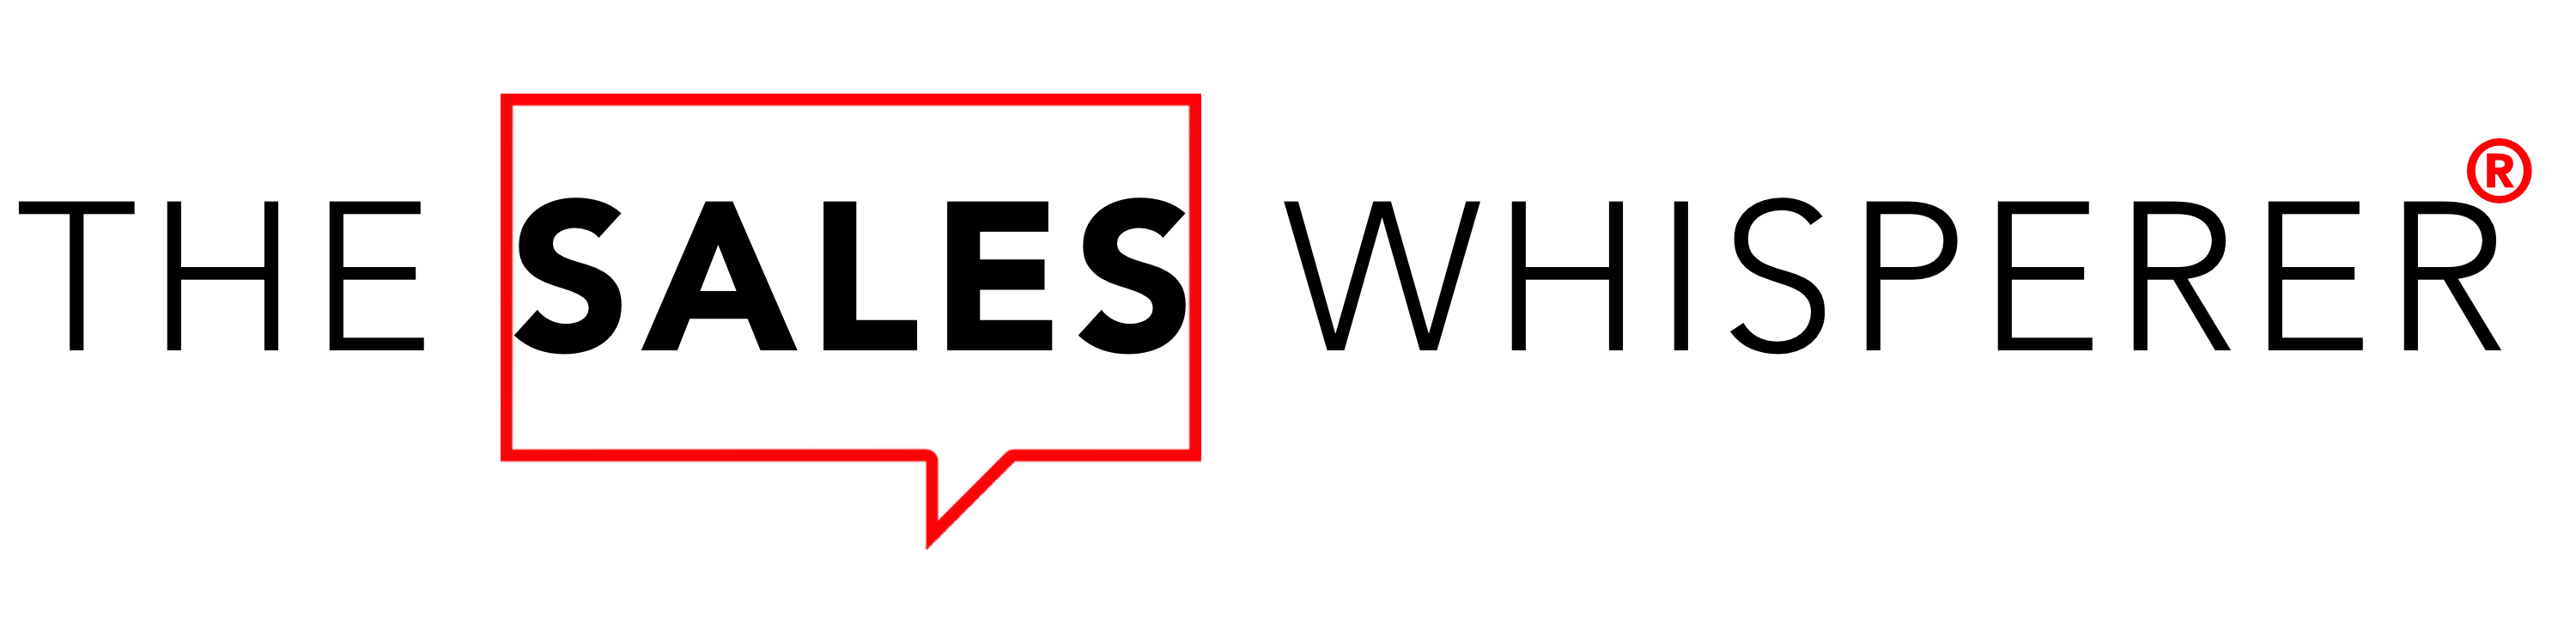 tsw callout logo black red.png